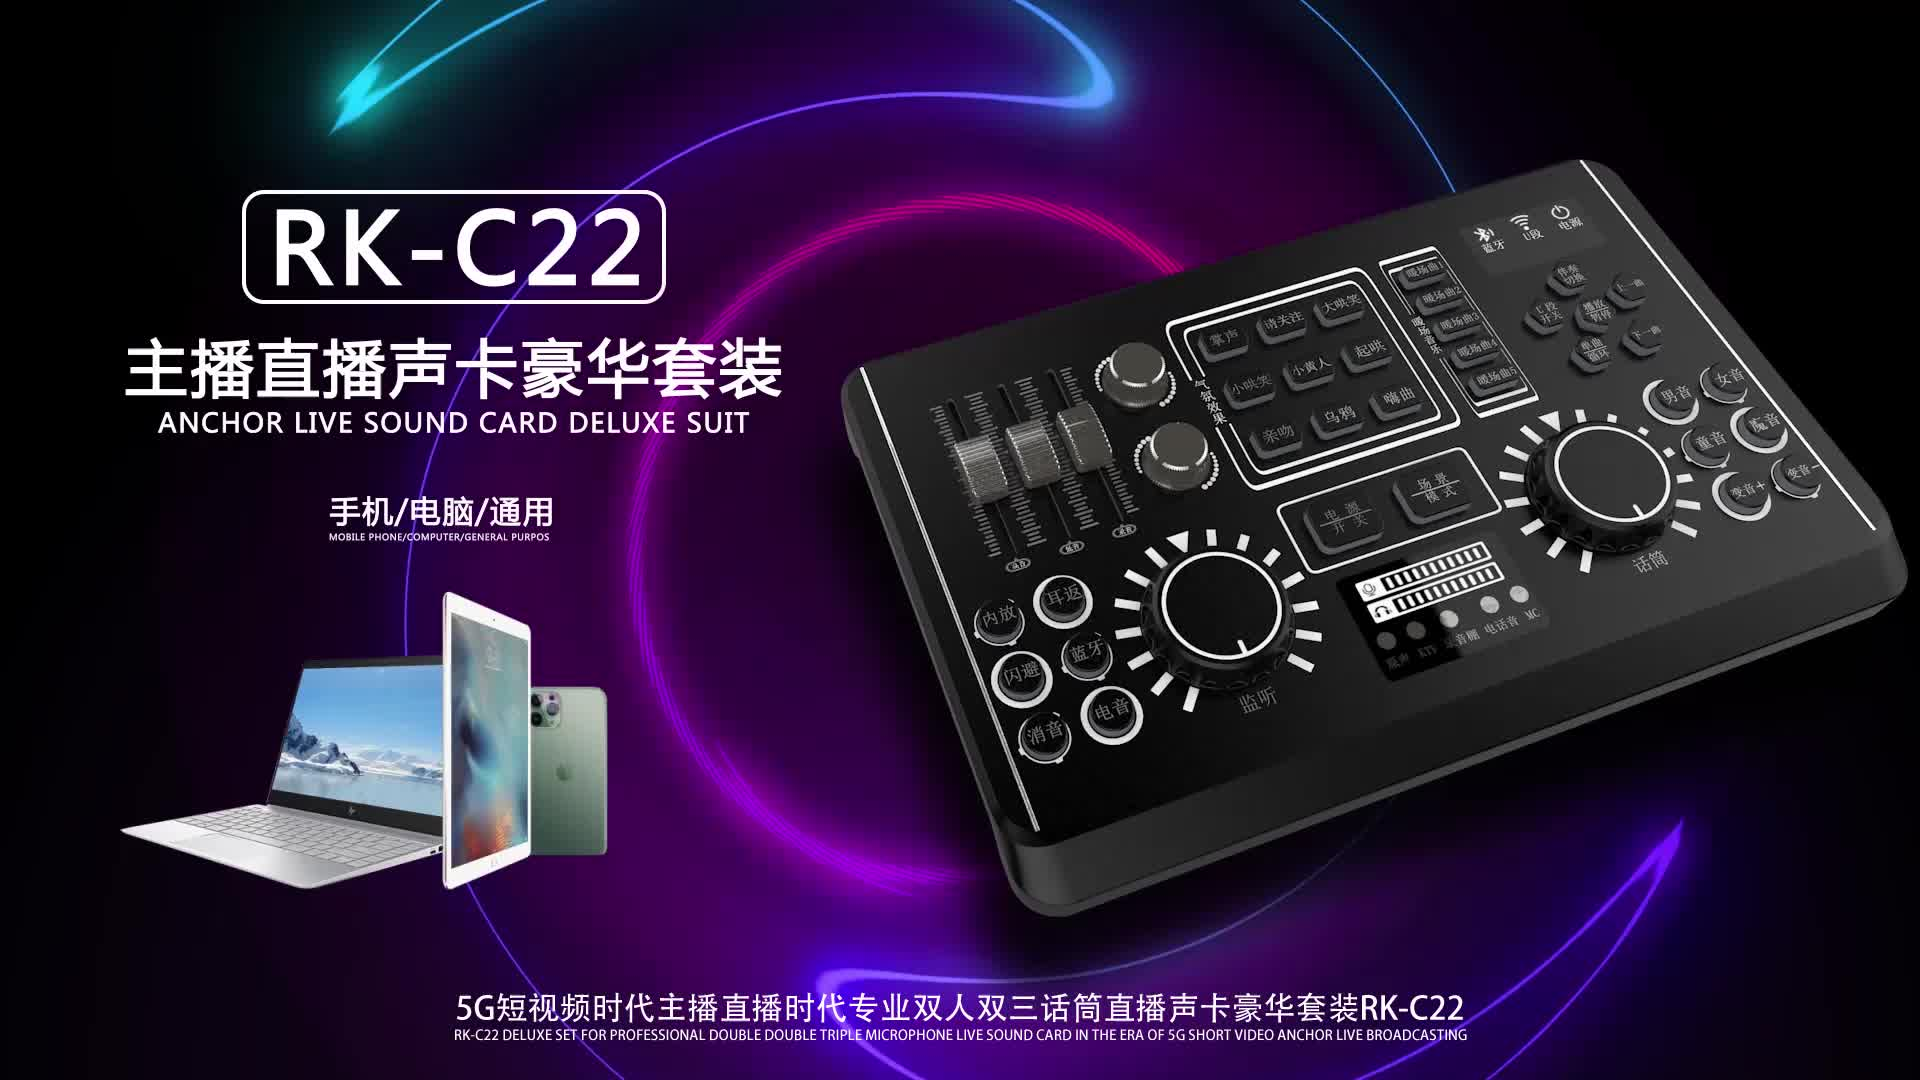 8000MAH built-in battery Live Sound Card, Voice Changer Device for Karaoke, Sound Card with Multiple Funny Sound Effect